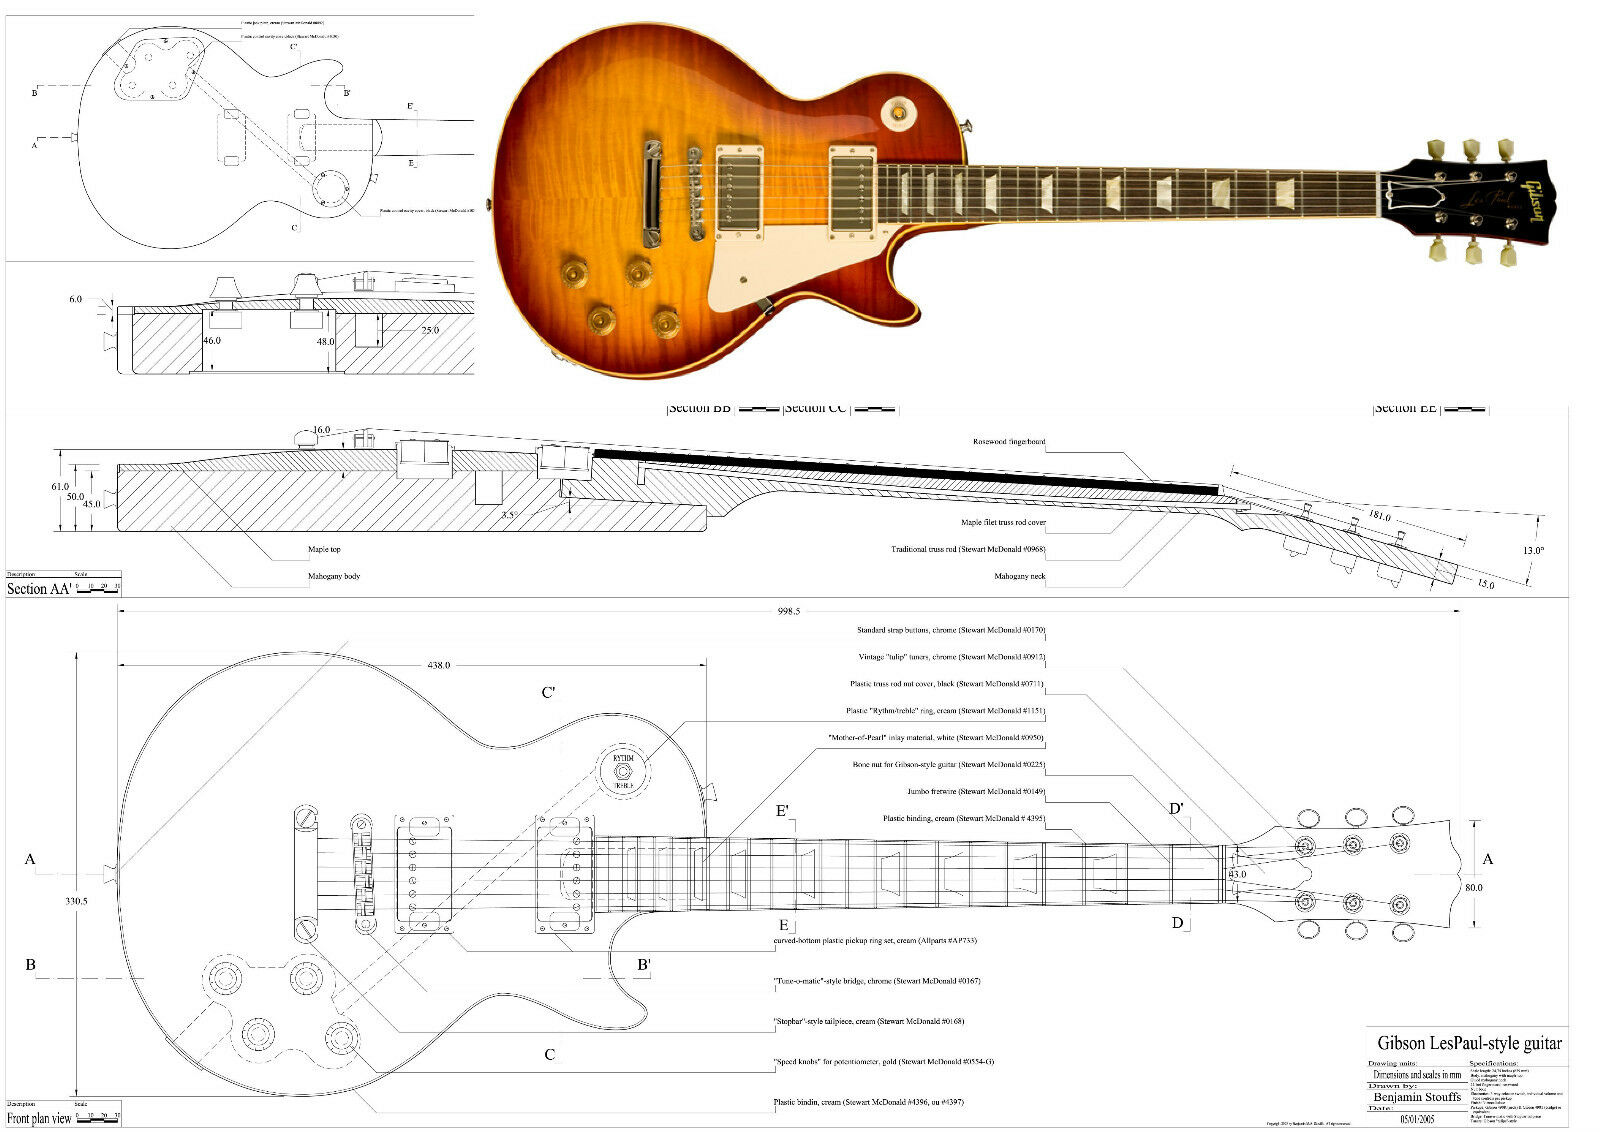 Gibson Les Paul 59 Full Scale Guitar Plans 1893 Picclick Uk 1958 Wiring Diagram 1 Of See More